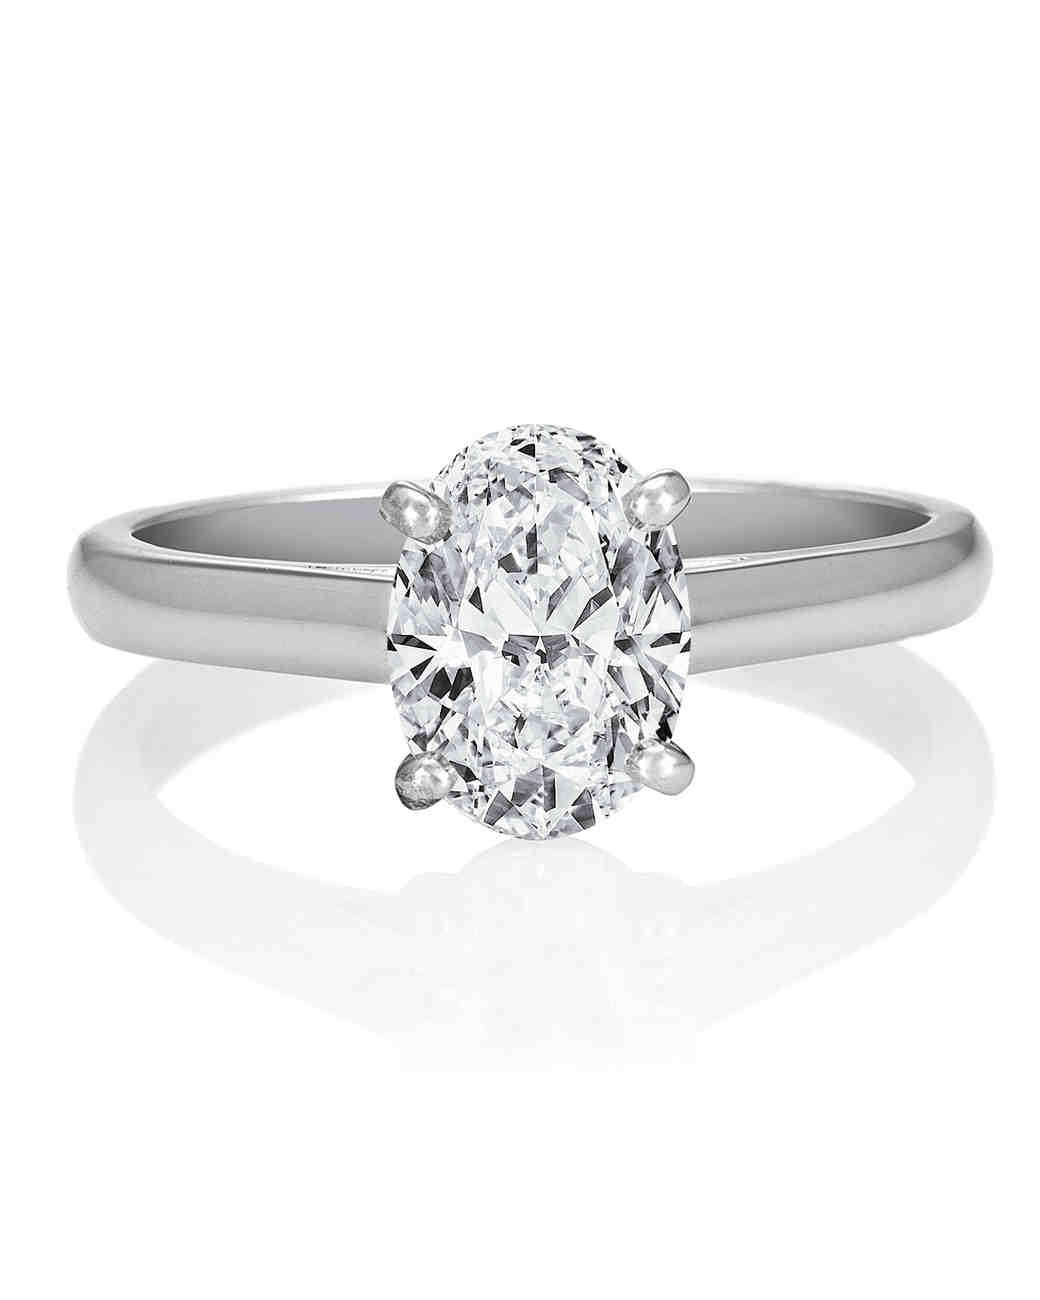 See Different Engagement Ring Cuts And Their Meanings